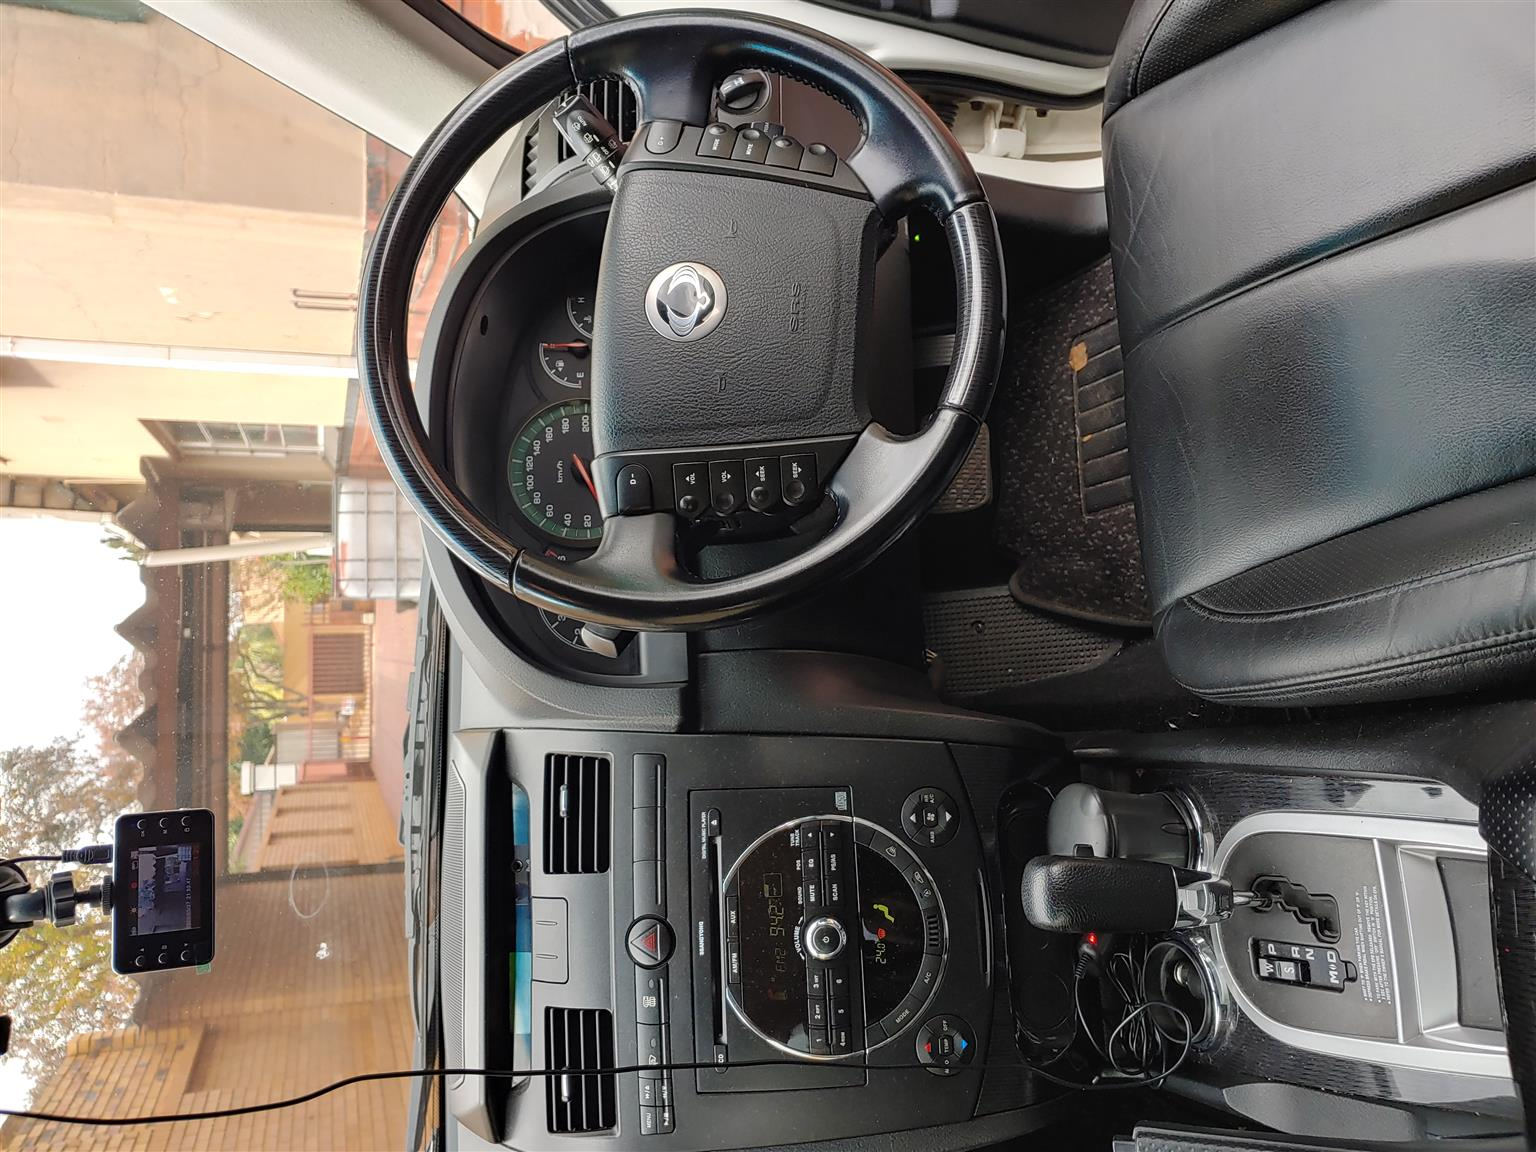 2009 Ssangyong Rexton RX270Xdi for sale